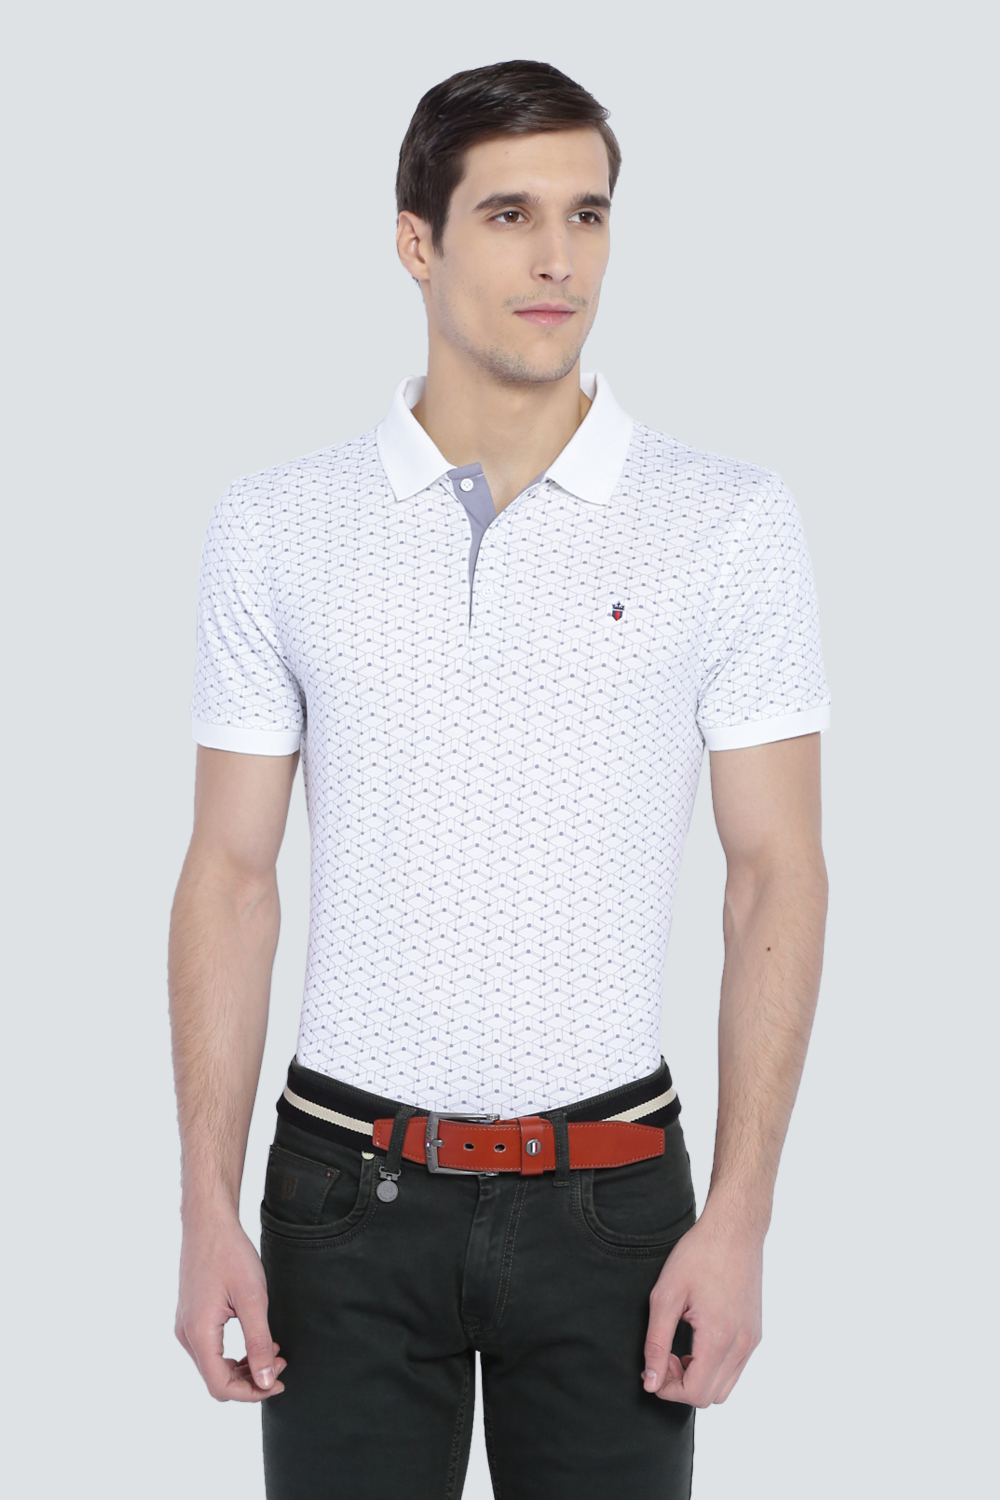 2833c21b213f86 LP T-Shirts, Louis Philippe White T Shirt for Men at Louisphilippe.com